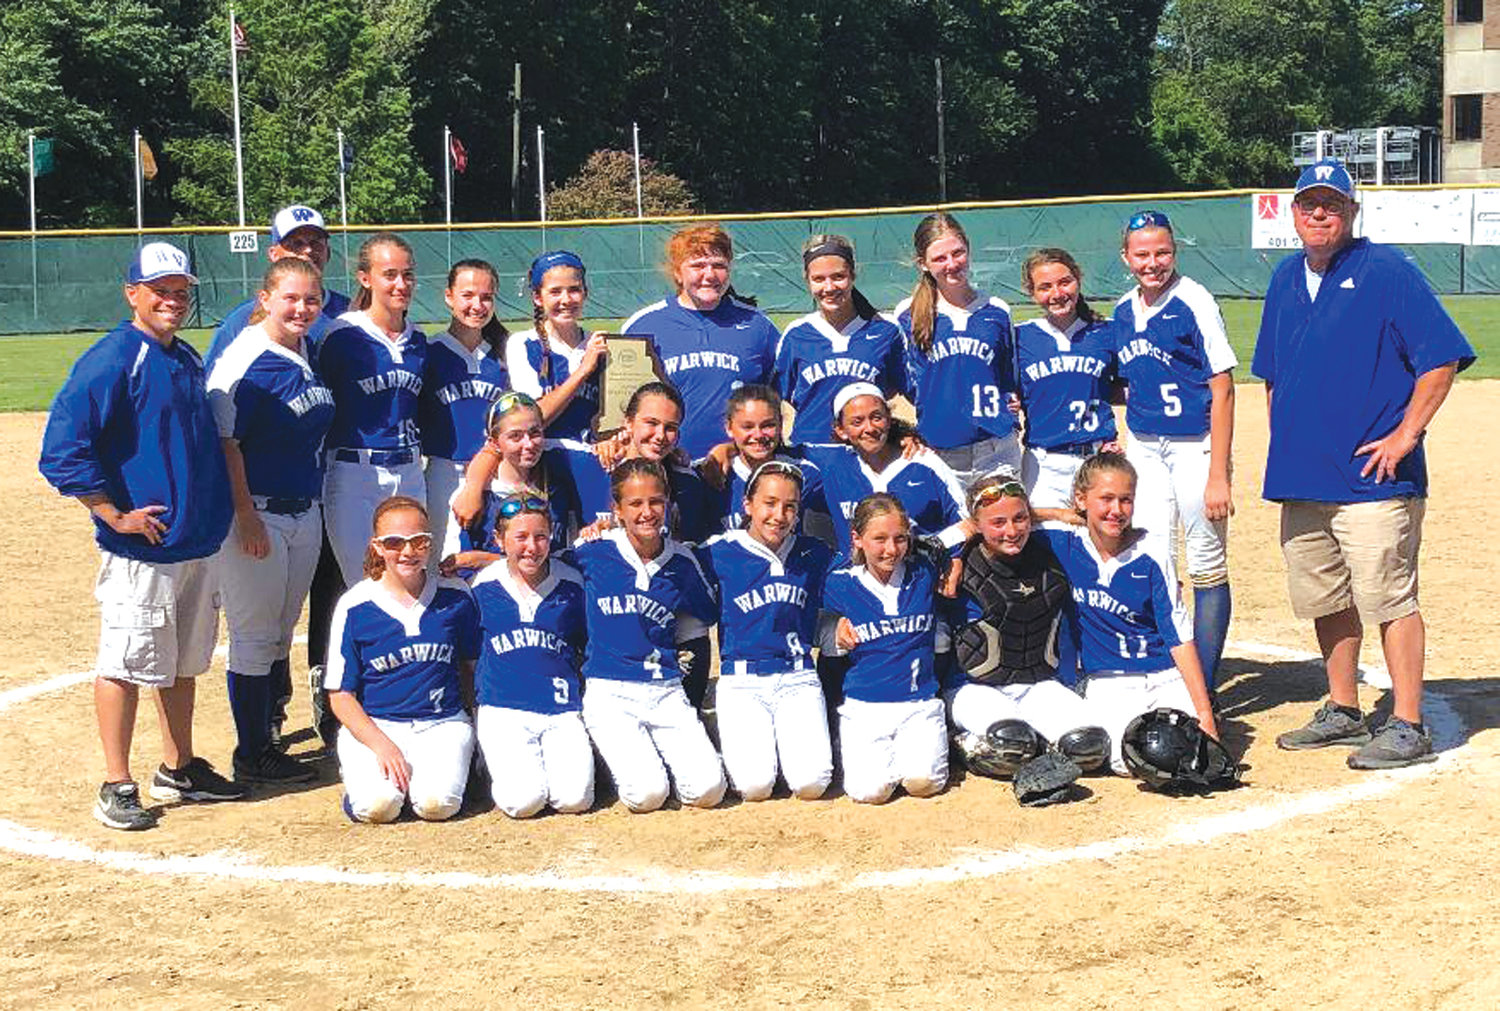 WE ARE THE CHAMPIONS: The 2019 state champion Warwick Vets Middle School softball team after winning the title at Rhode Island College.